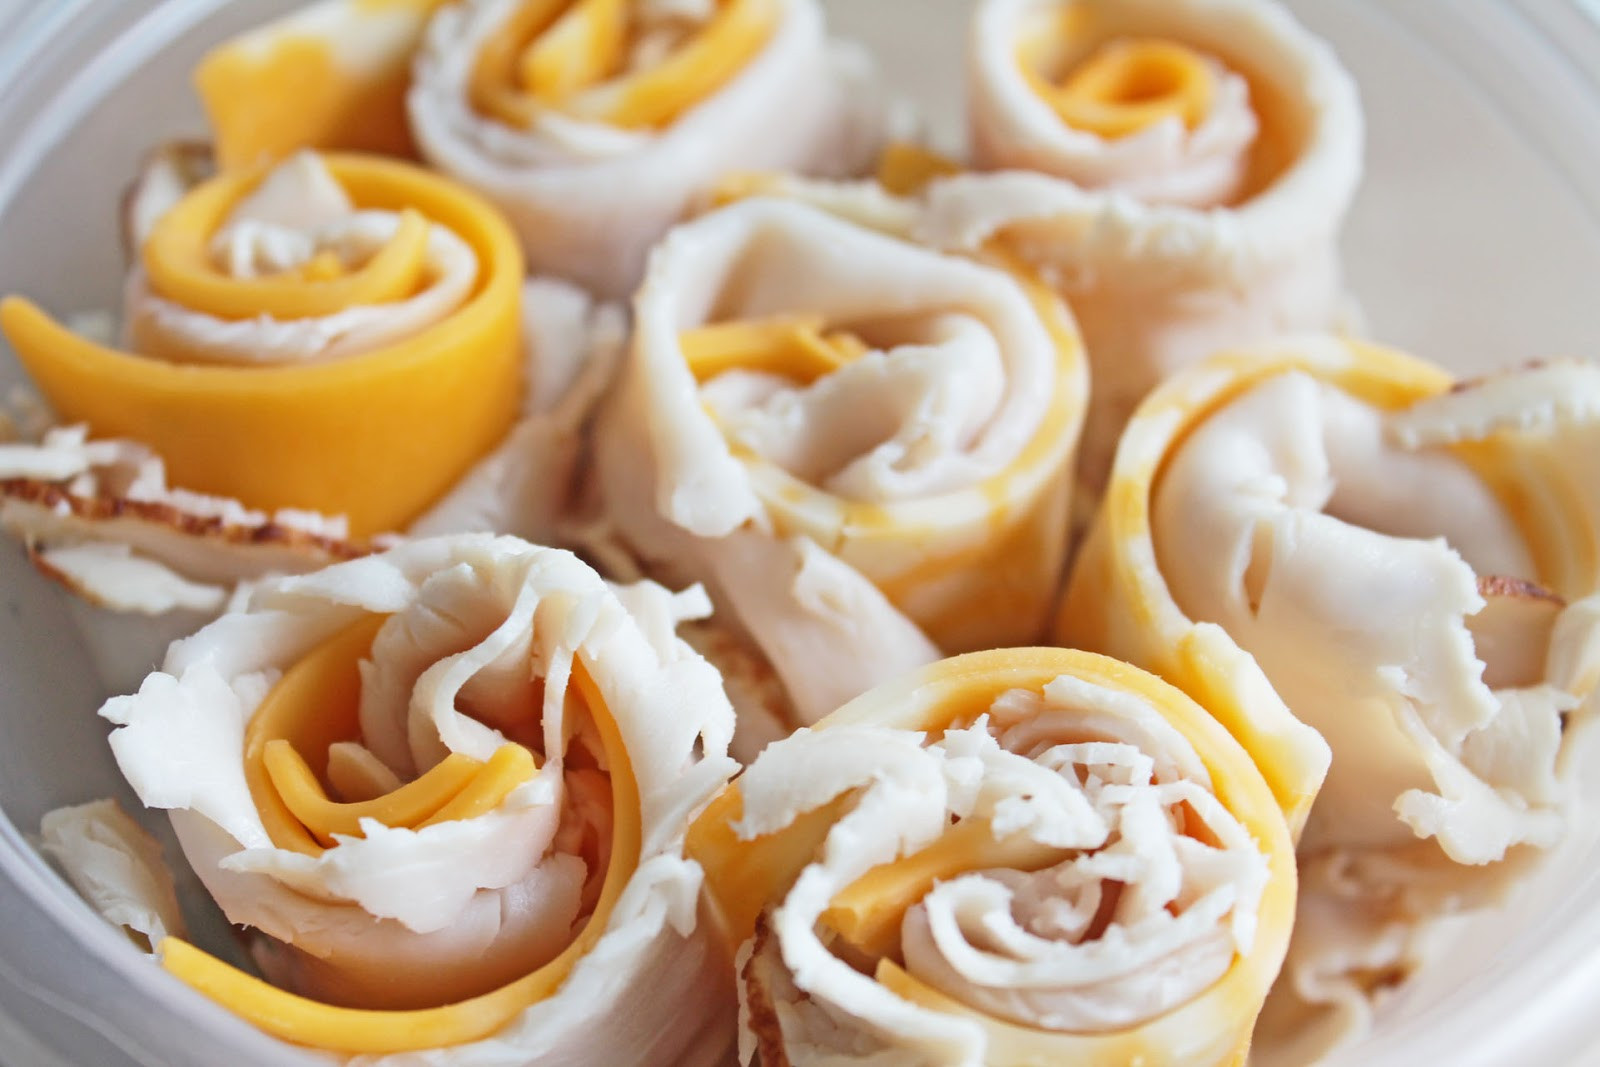 Easy Healthy Snacks For Work  Easy to Make Snacks Turkey and Cheese Rolls Recipe